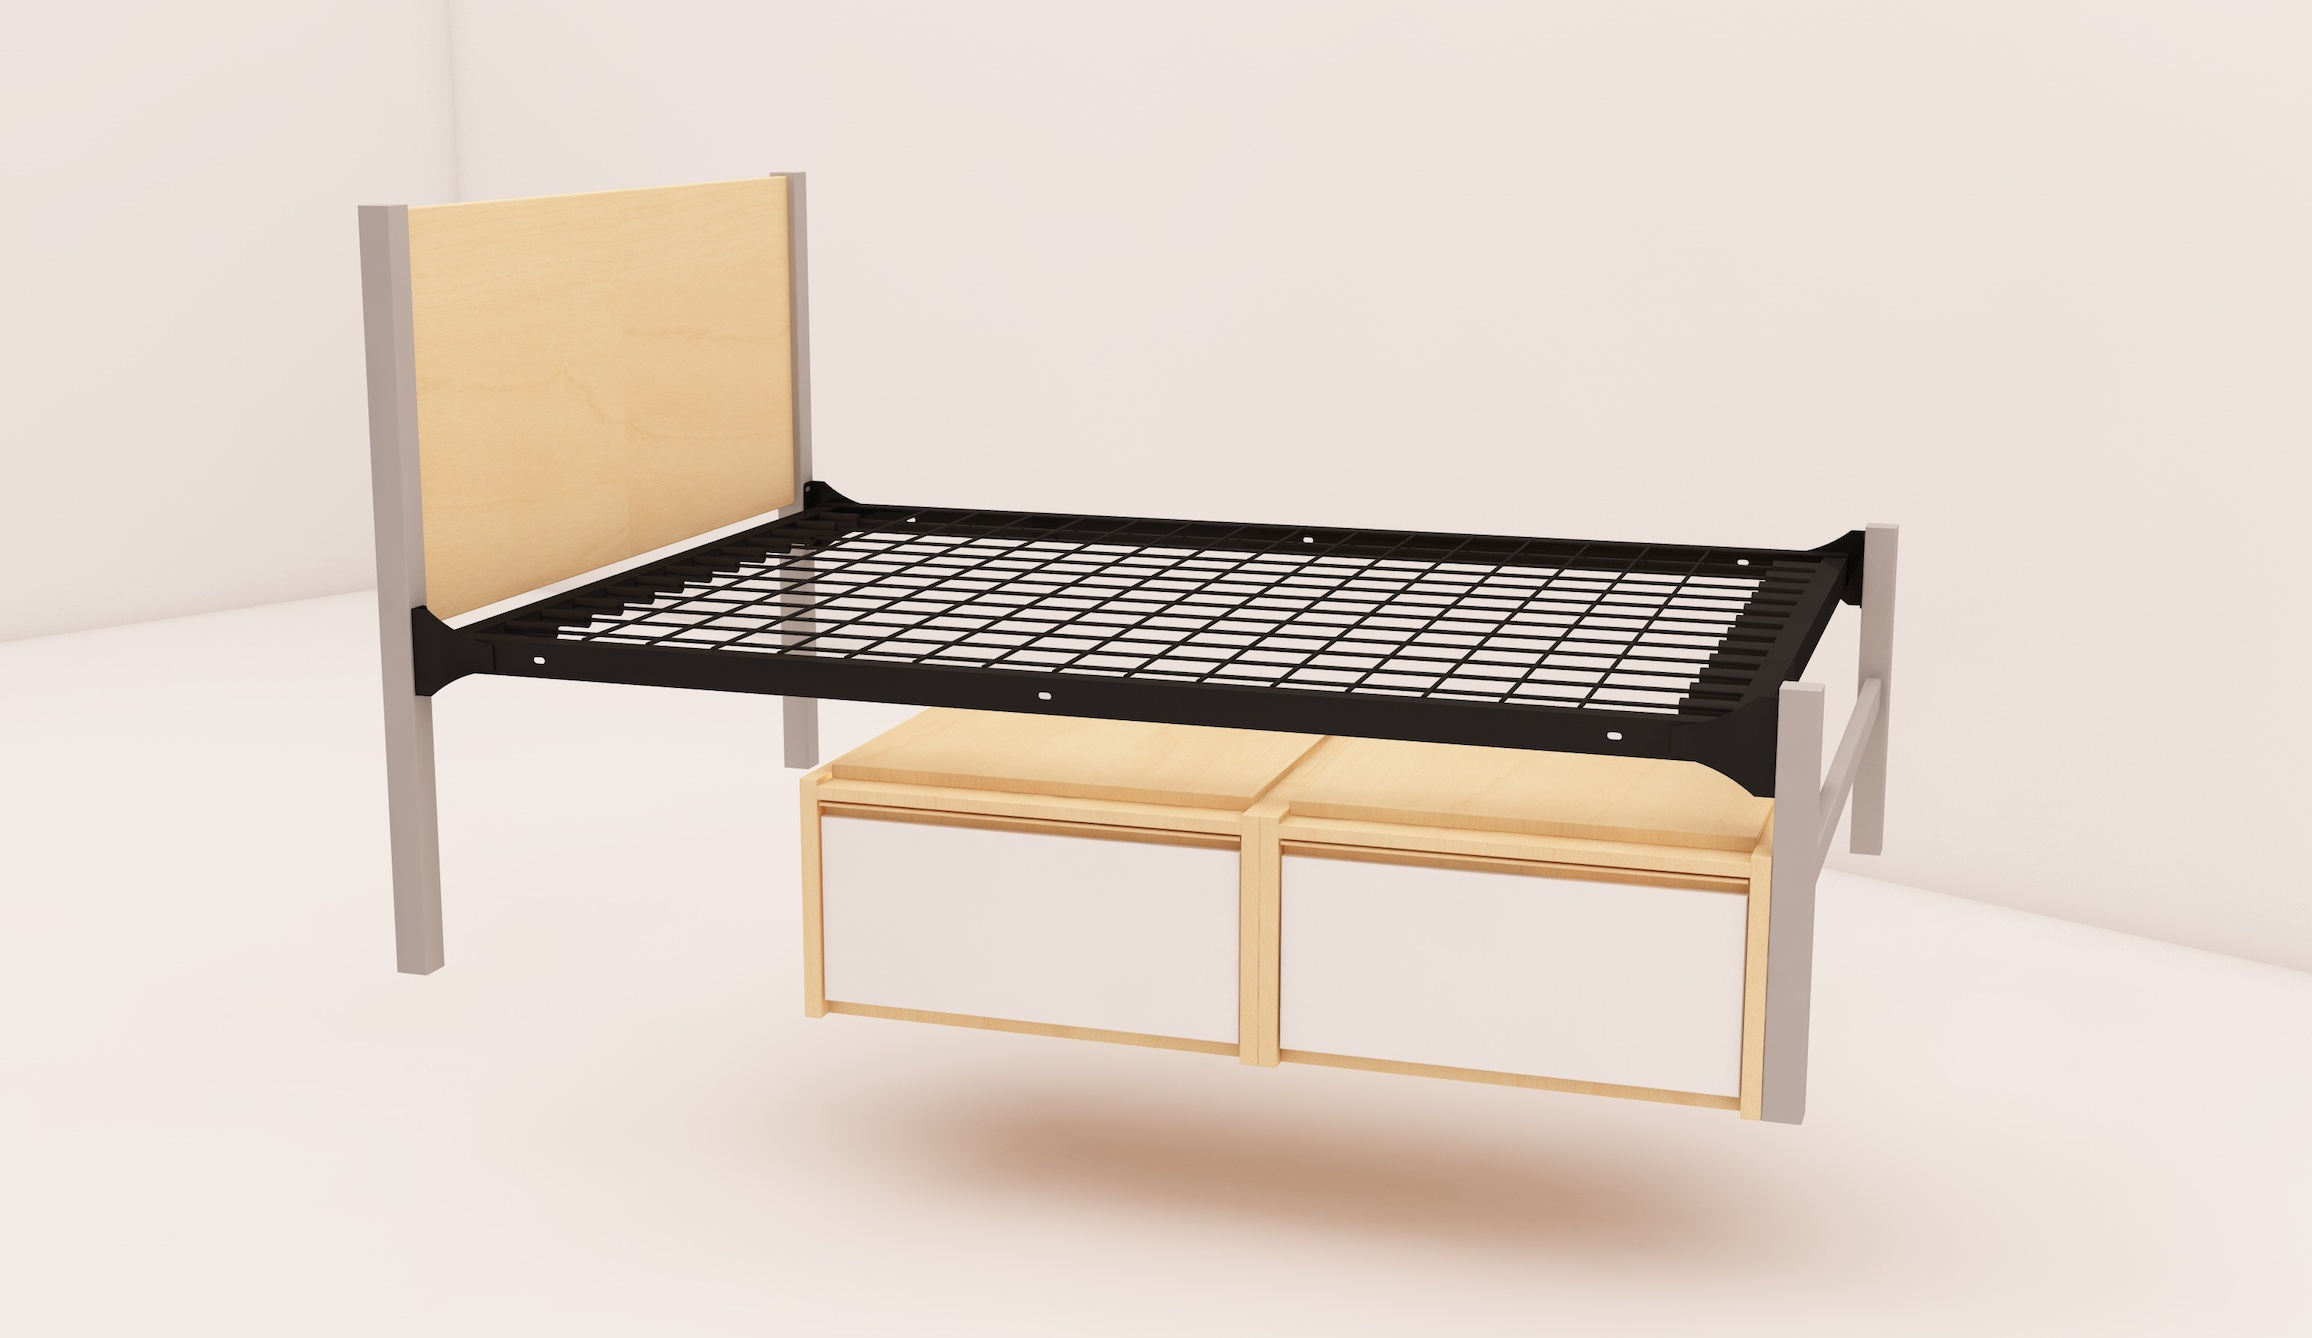 nexus bed